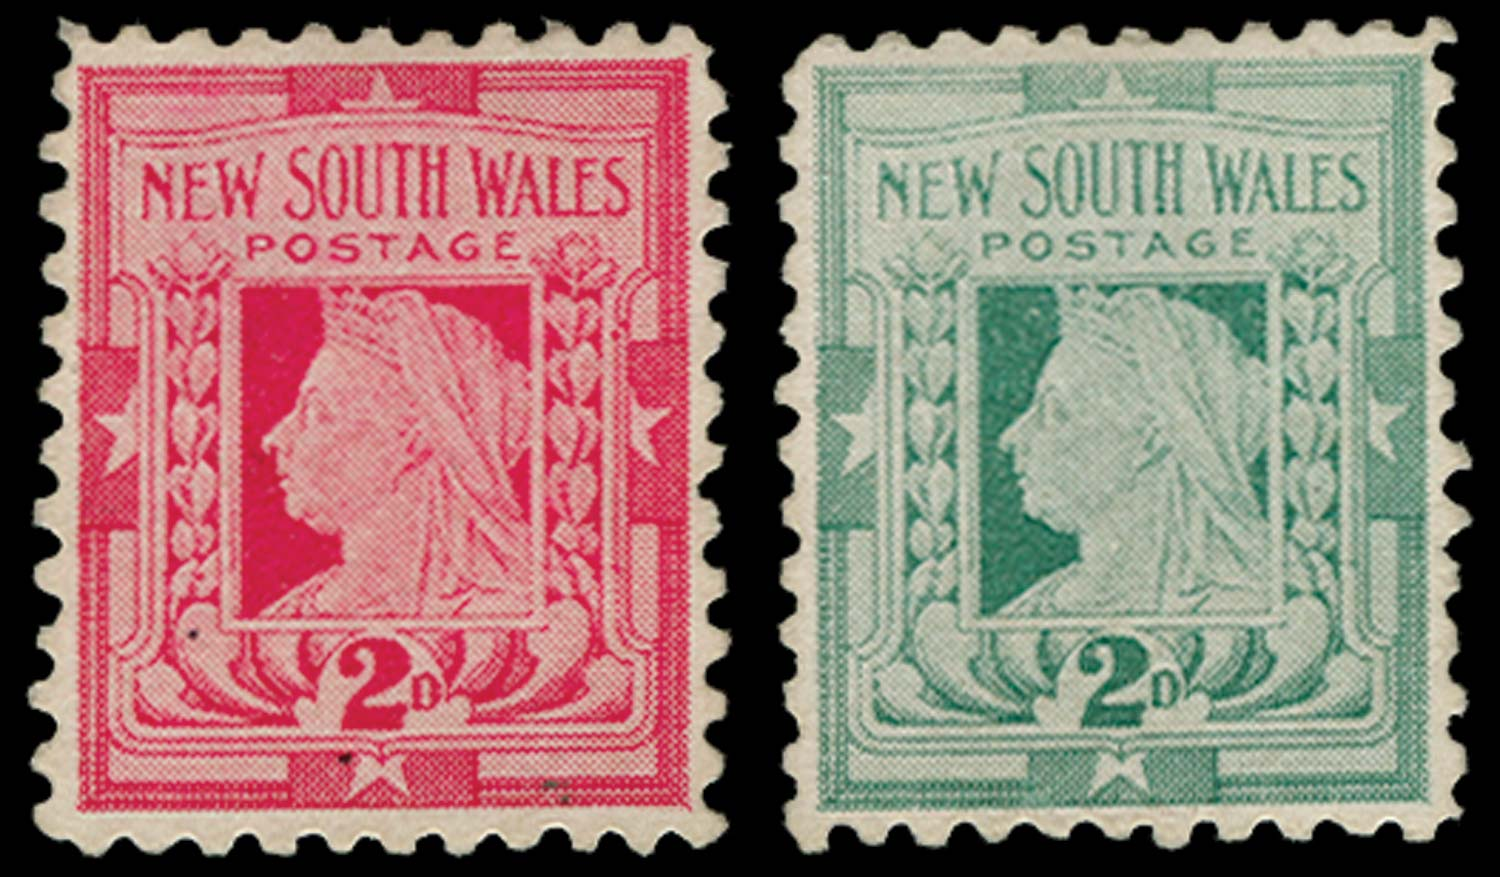 NEW SOUTH WALES 1897  SG292 Essay